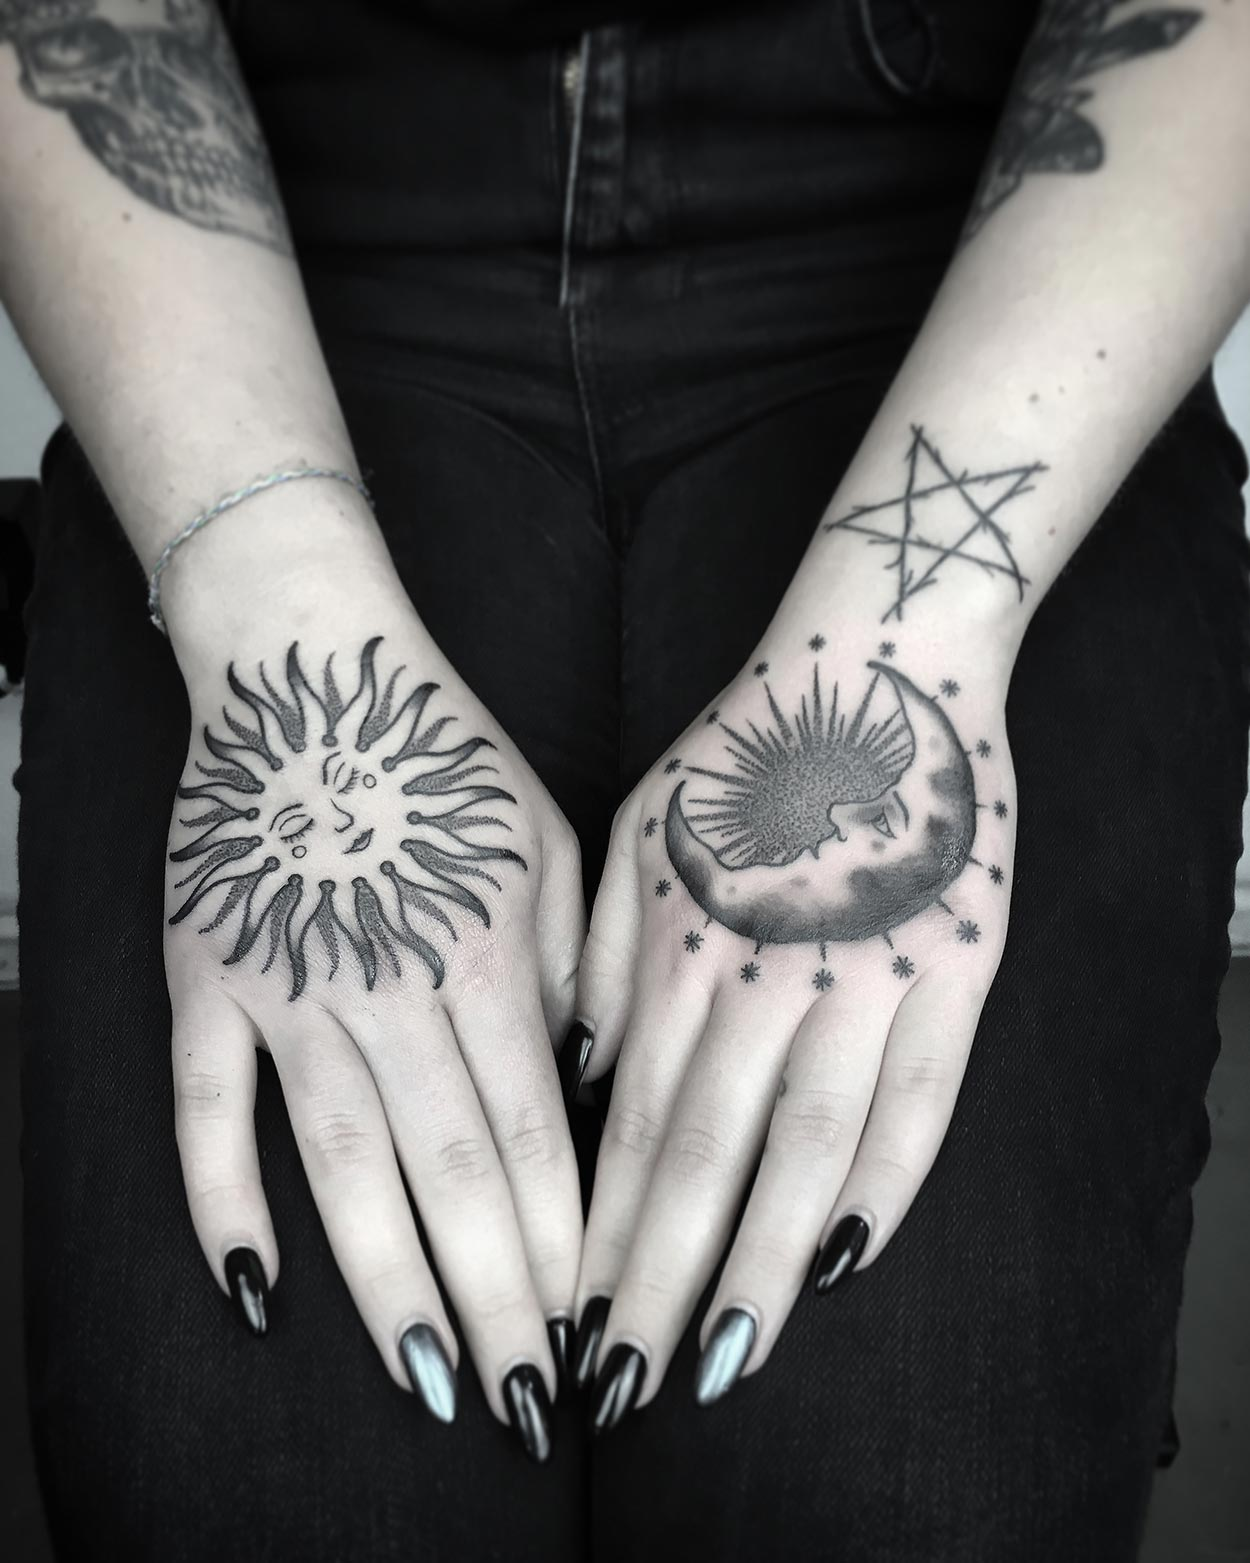 Handtattoos von Phil Octowhale